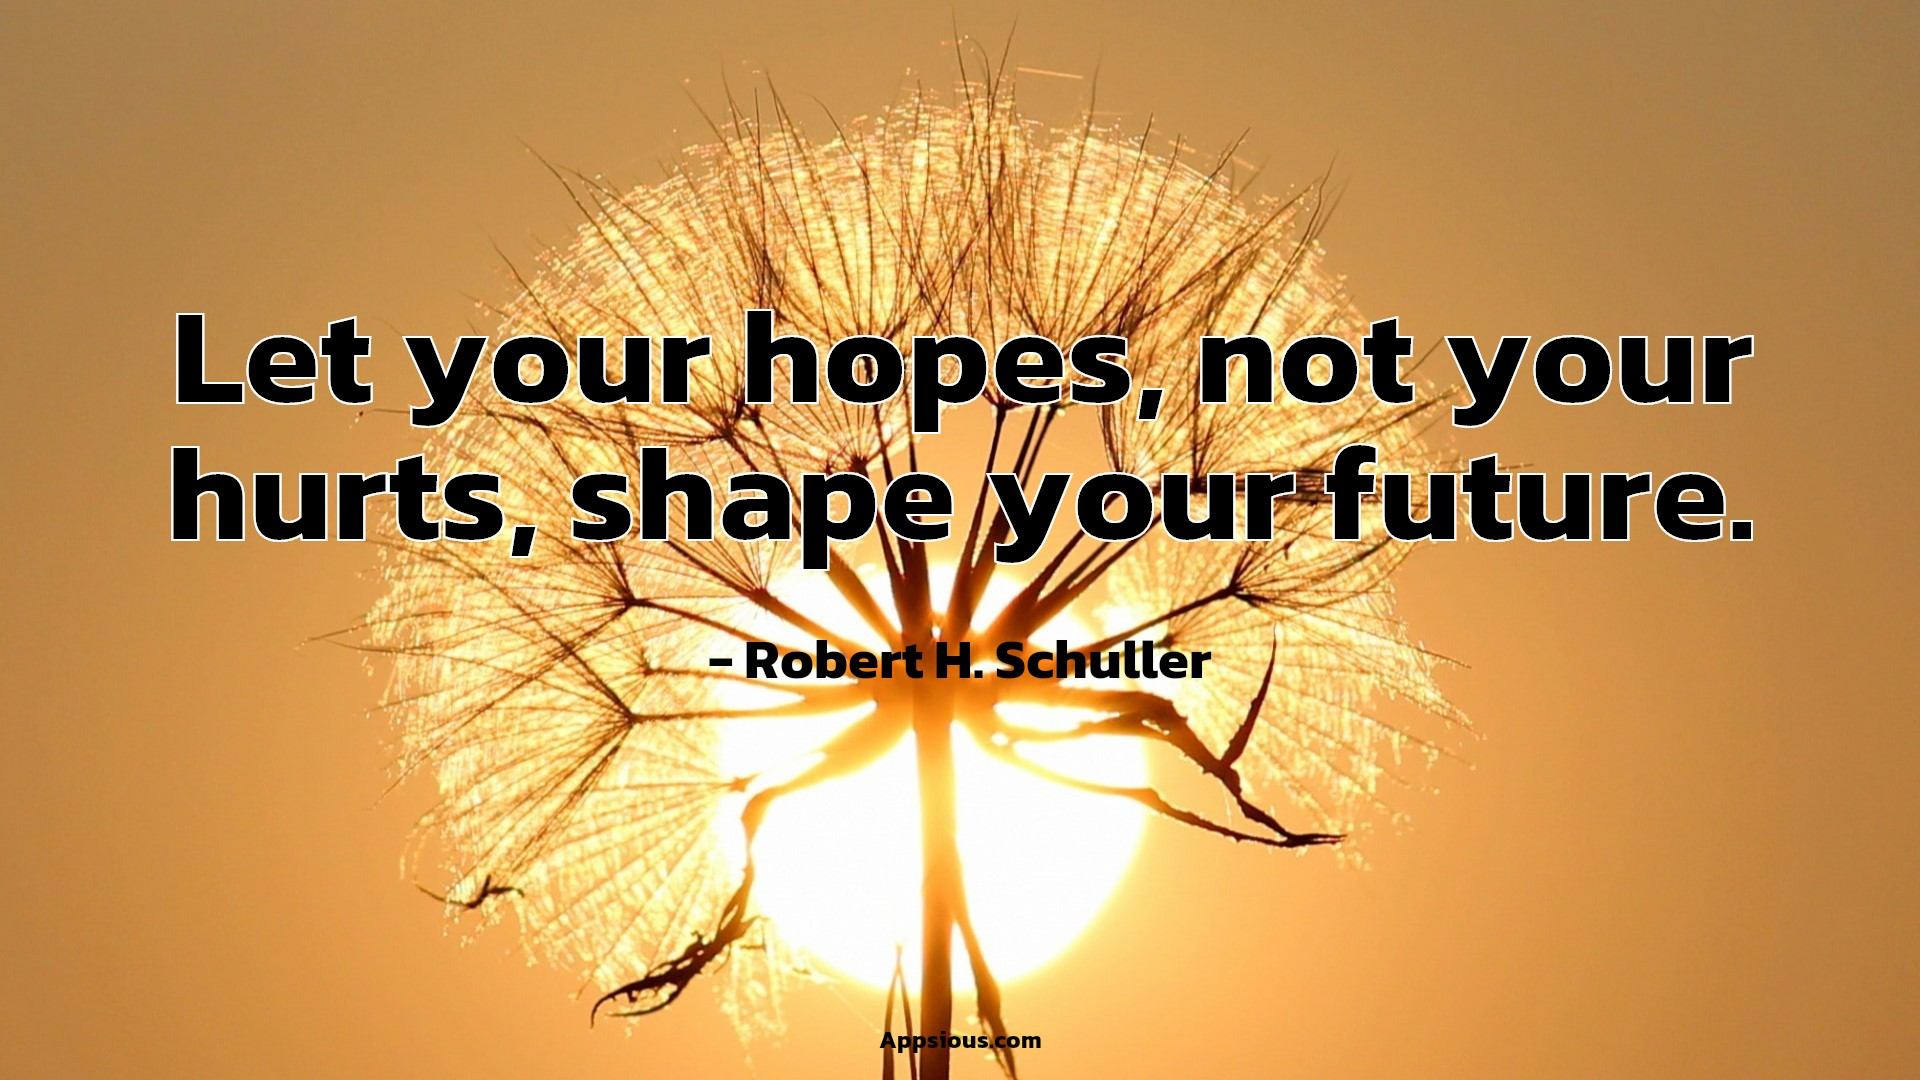 Let your hopes, not your hurts, shape your future.